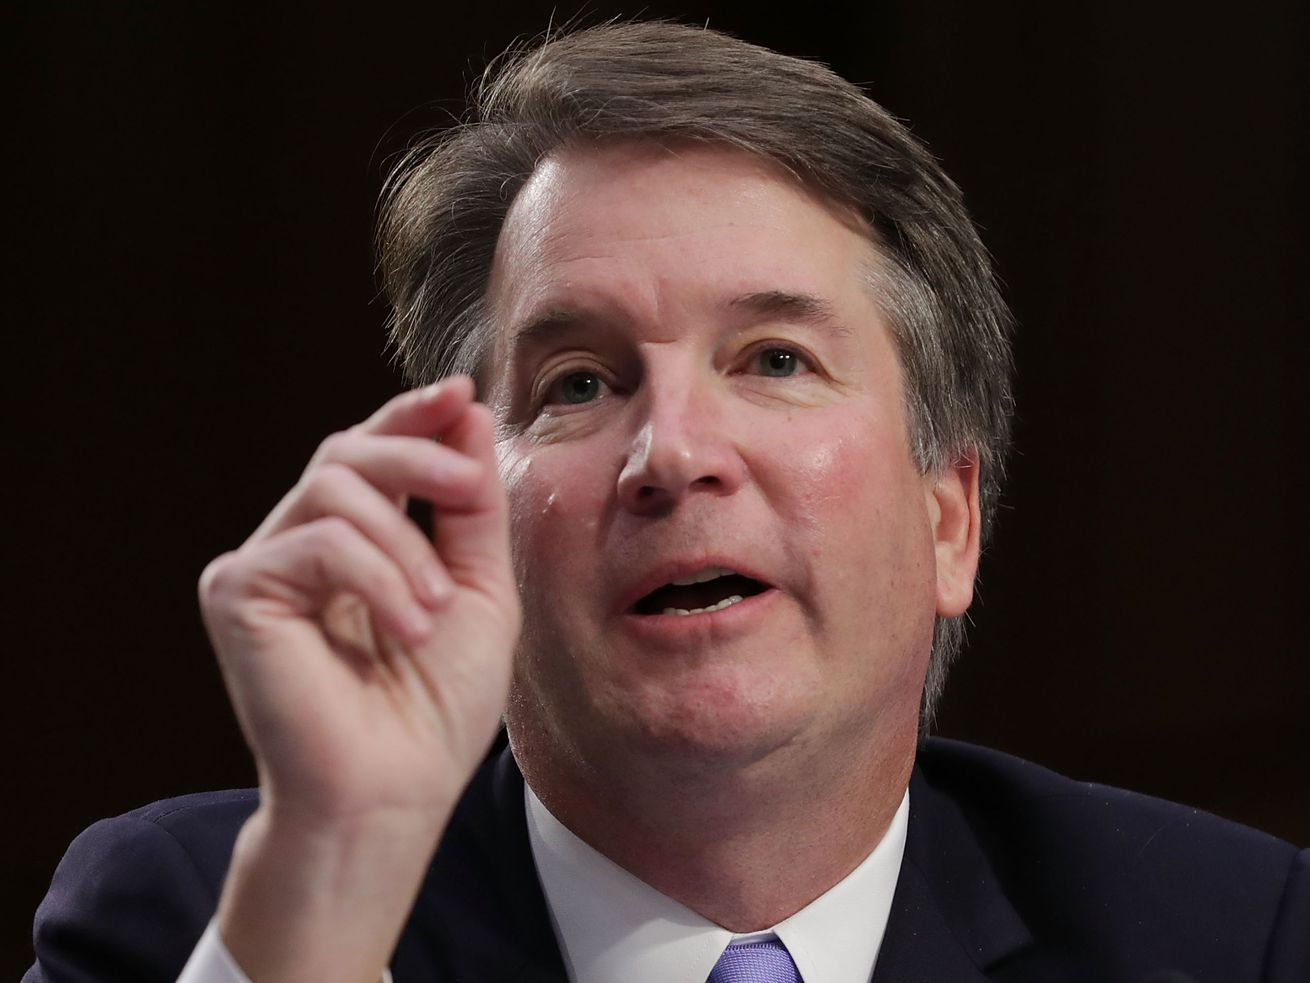 Supreme Court nominee Judge Brett Kavanaugh testifies before the Senate Judiciary Committee on the third day of his Supreme Court confirmation hearing on Capitol Hill September 6, 2018, in Washington, DC.